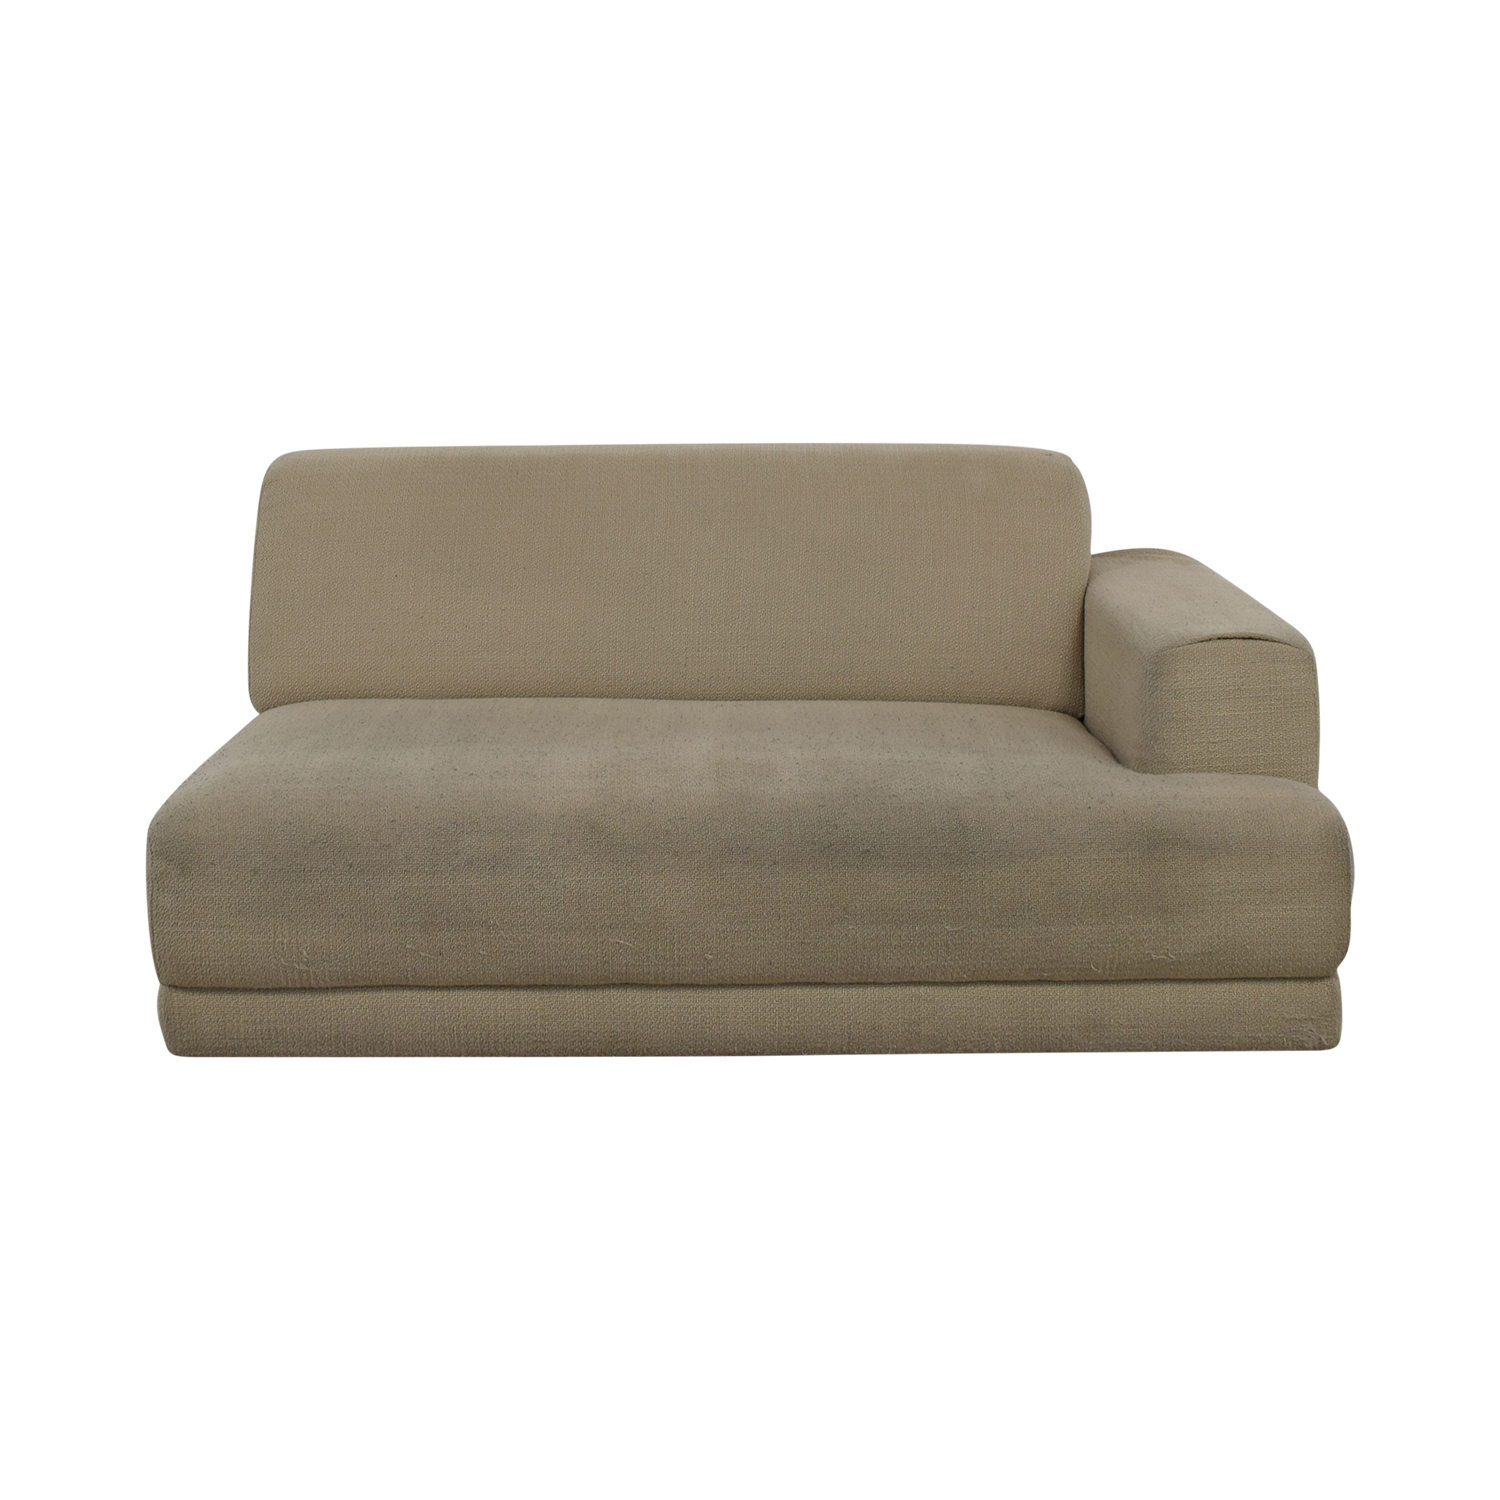 Crate & Barrel Crate & Barrel Beige One Armed Chaise Sofa price